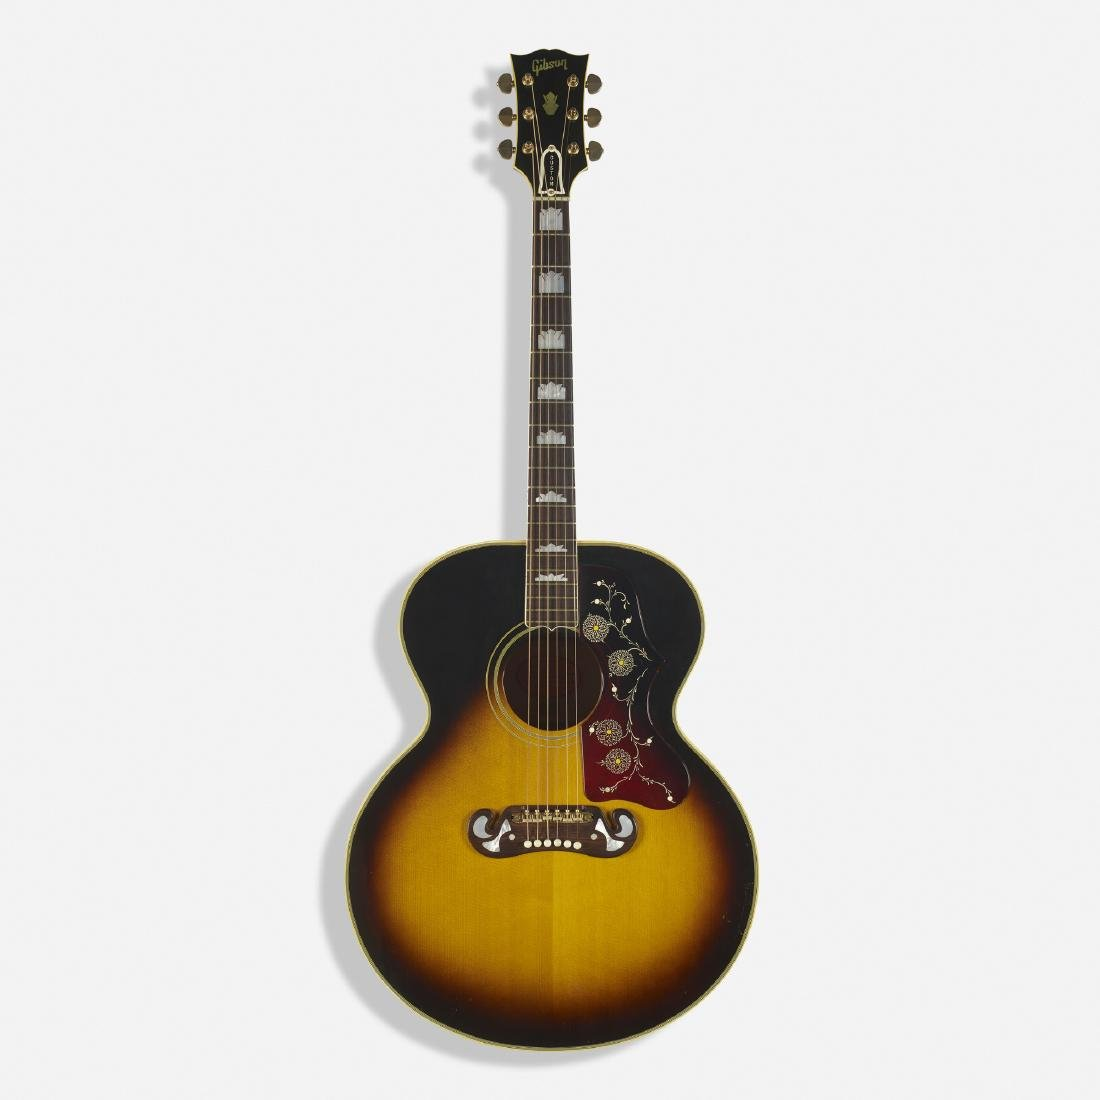 Gibson, 1968 J-200 acoustic guitar